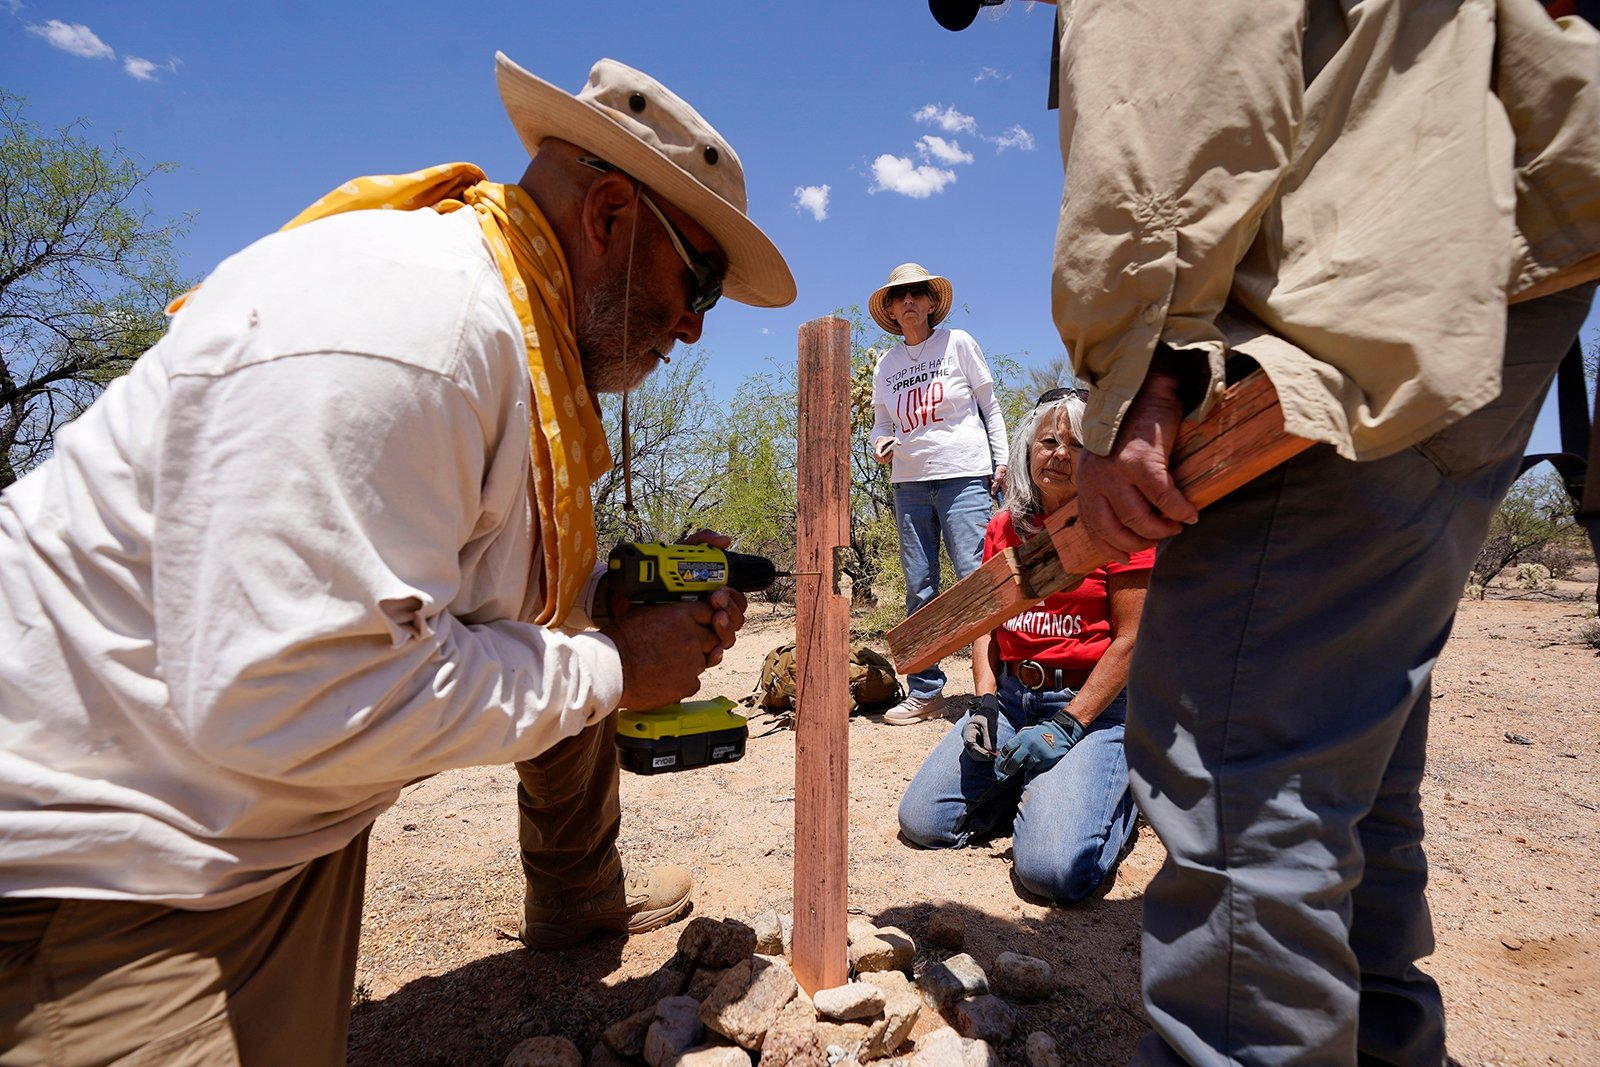 From left, Peter Lucero, Eileen O'Farrell Smith, Terry Stanford and Alvaro Enciso, all volunteers for the Tucson Samaritans, try to repair a damaged cross marking the site of a deceased migrant in the desert near Three Points, Ariz., on Tuesday, May 18, 2021. (AP Photo/Ross D. Franklin)